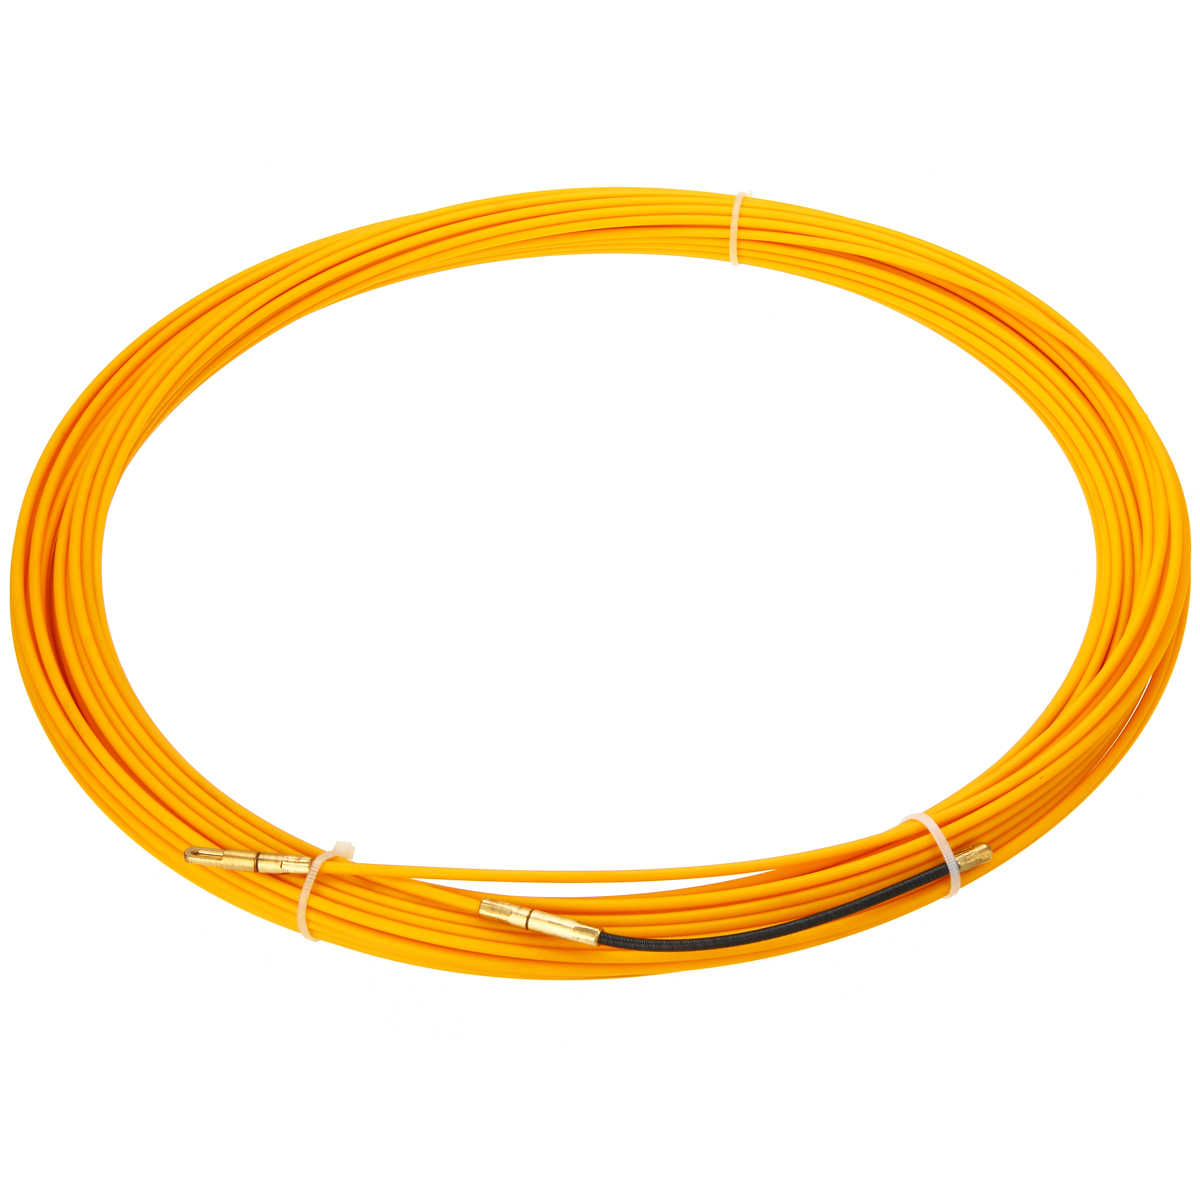 New 30M 3mm Guide Device Fiberglass Electric Cable Push Pullers Duct Snake Rodder Fish Tape Wire Mayitr Yellow